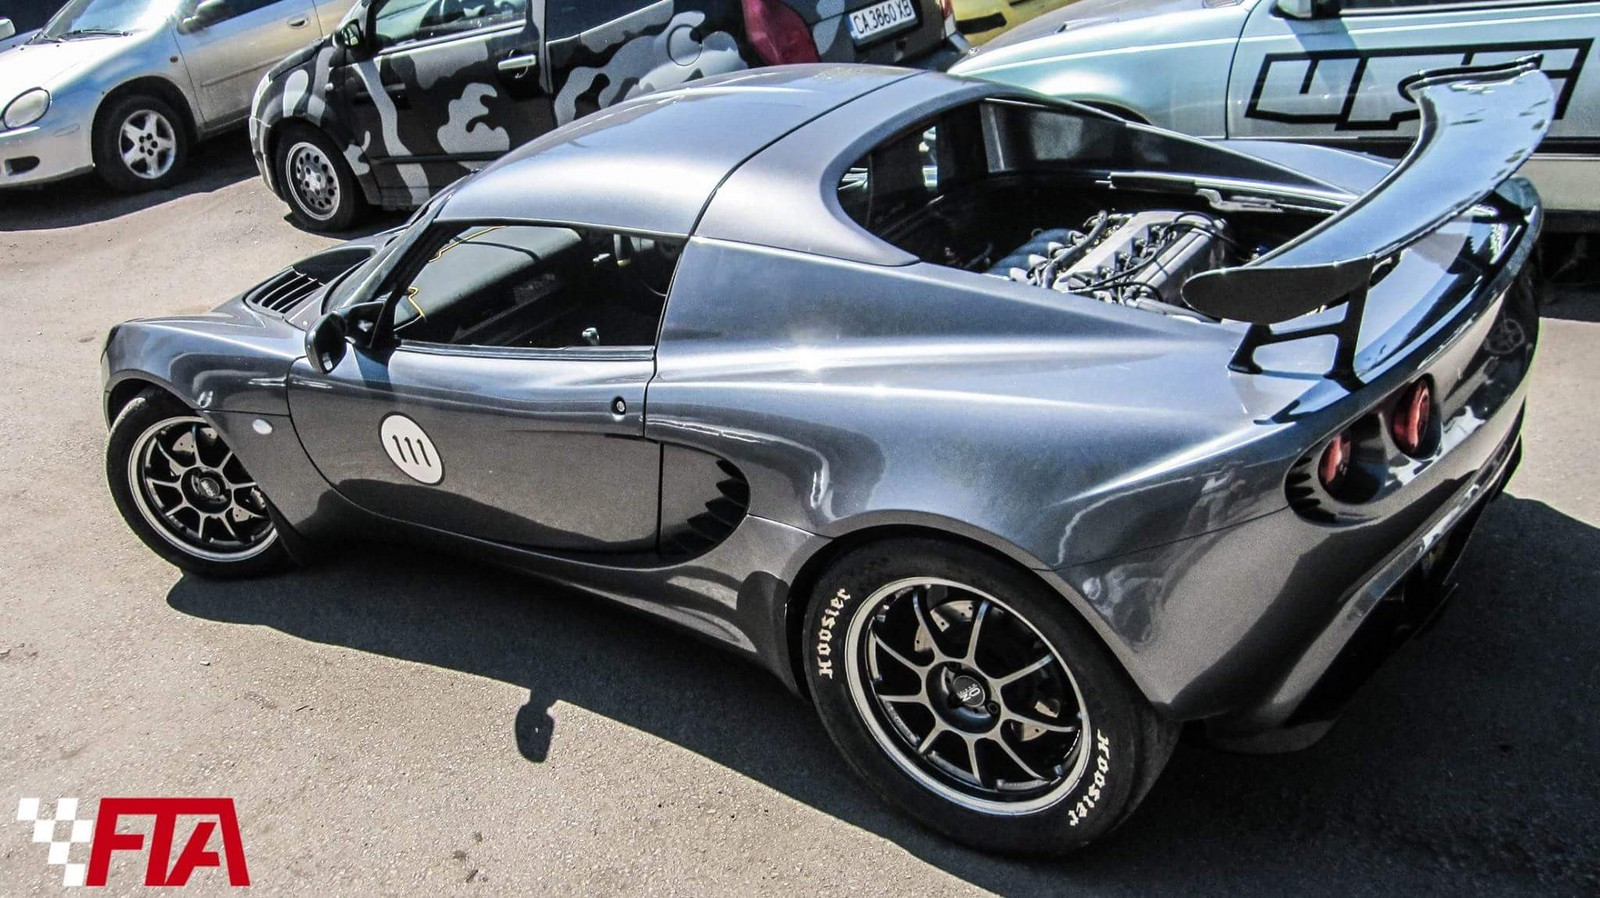 2002 lotus elise 111r gt3076 1 4 mile trap speeds 0 60. Black Bedroom Furniture Sets. Home Design Ideas